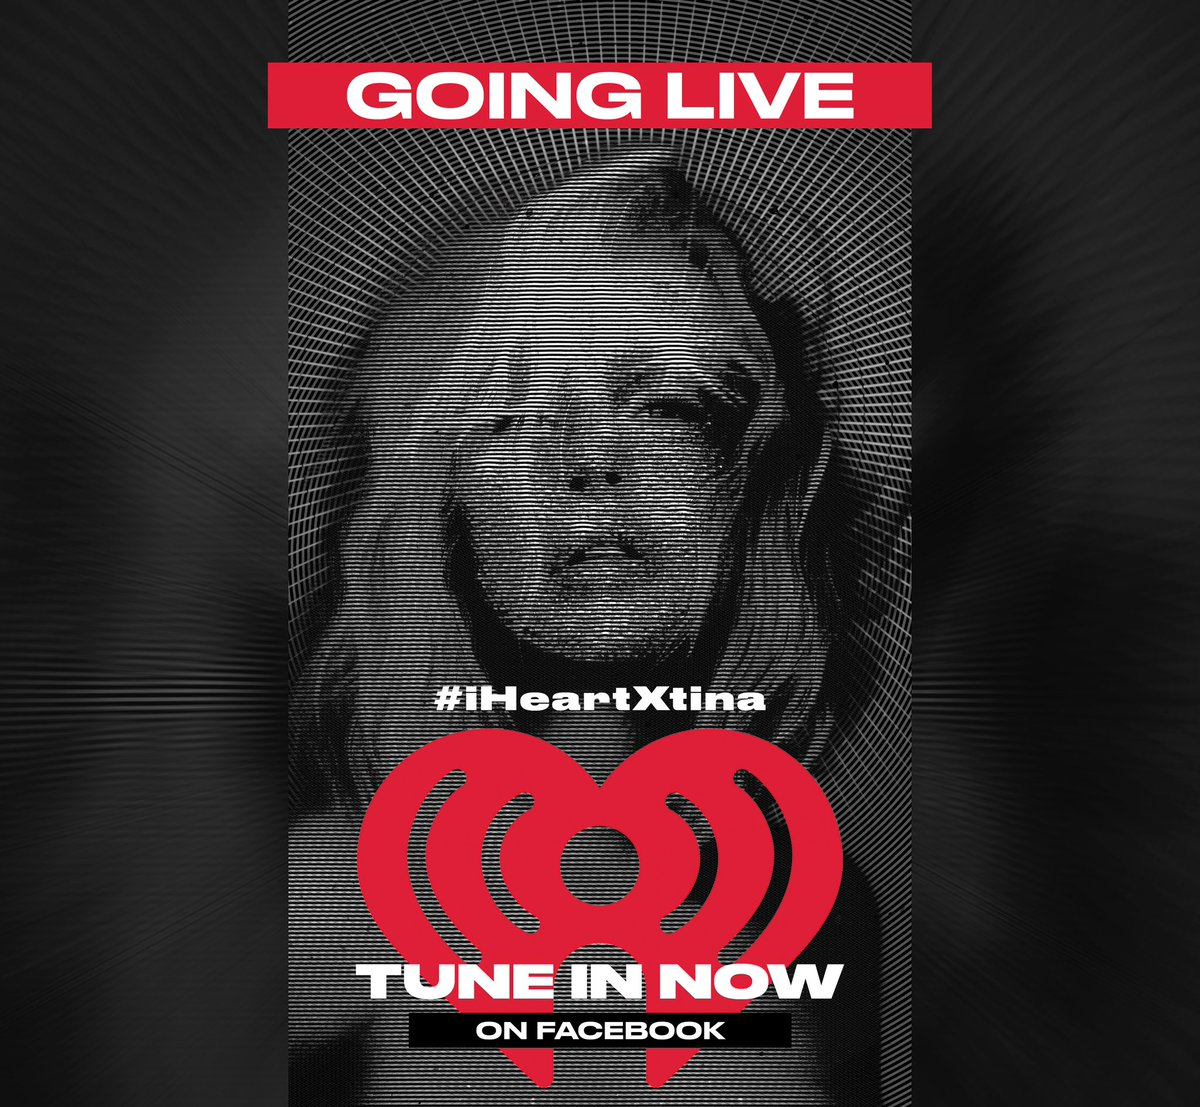 We're live ⚡️✨ come & join the party with me & @iheartradio here -> https://t.co/TViDy9dVyX #iHeartXtina https://t.co/WuBDjCIJfg